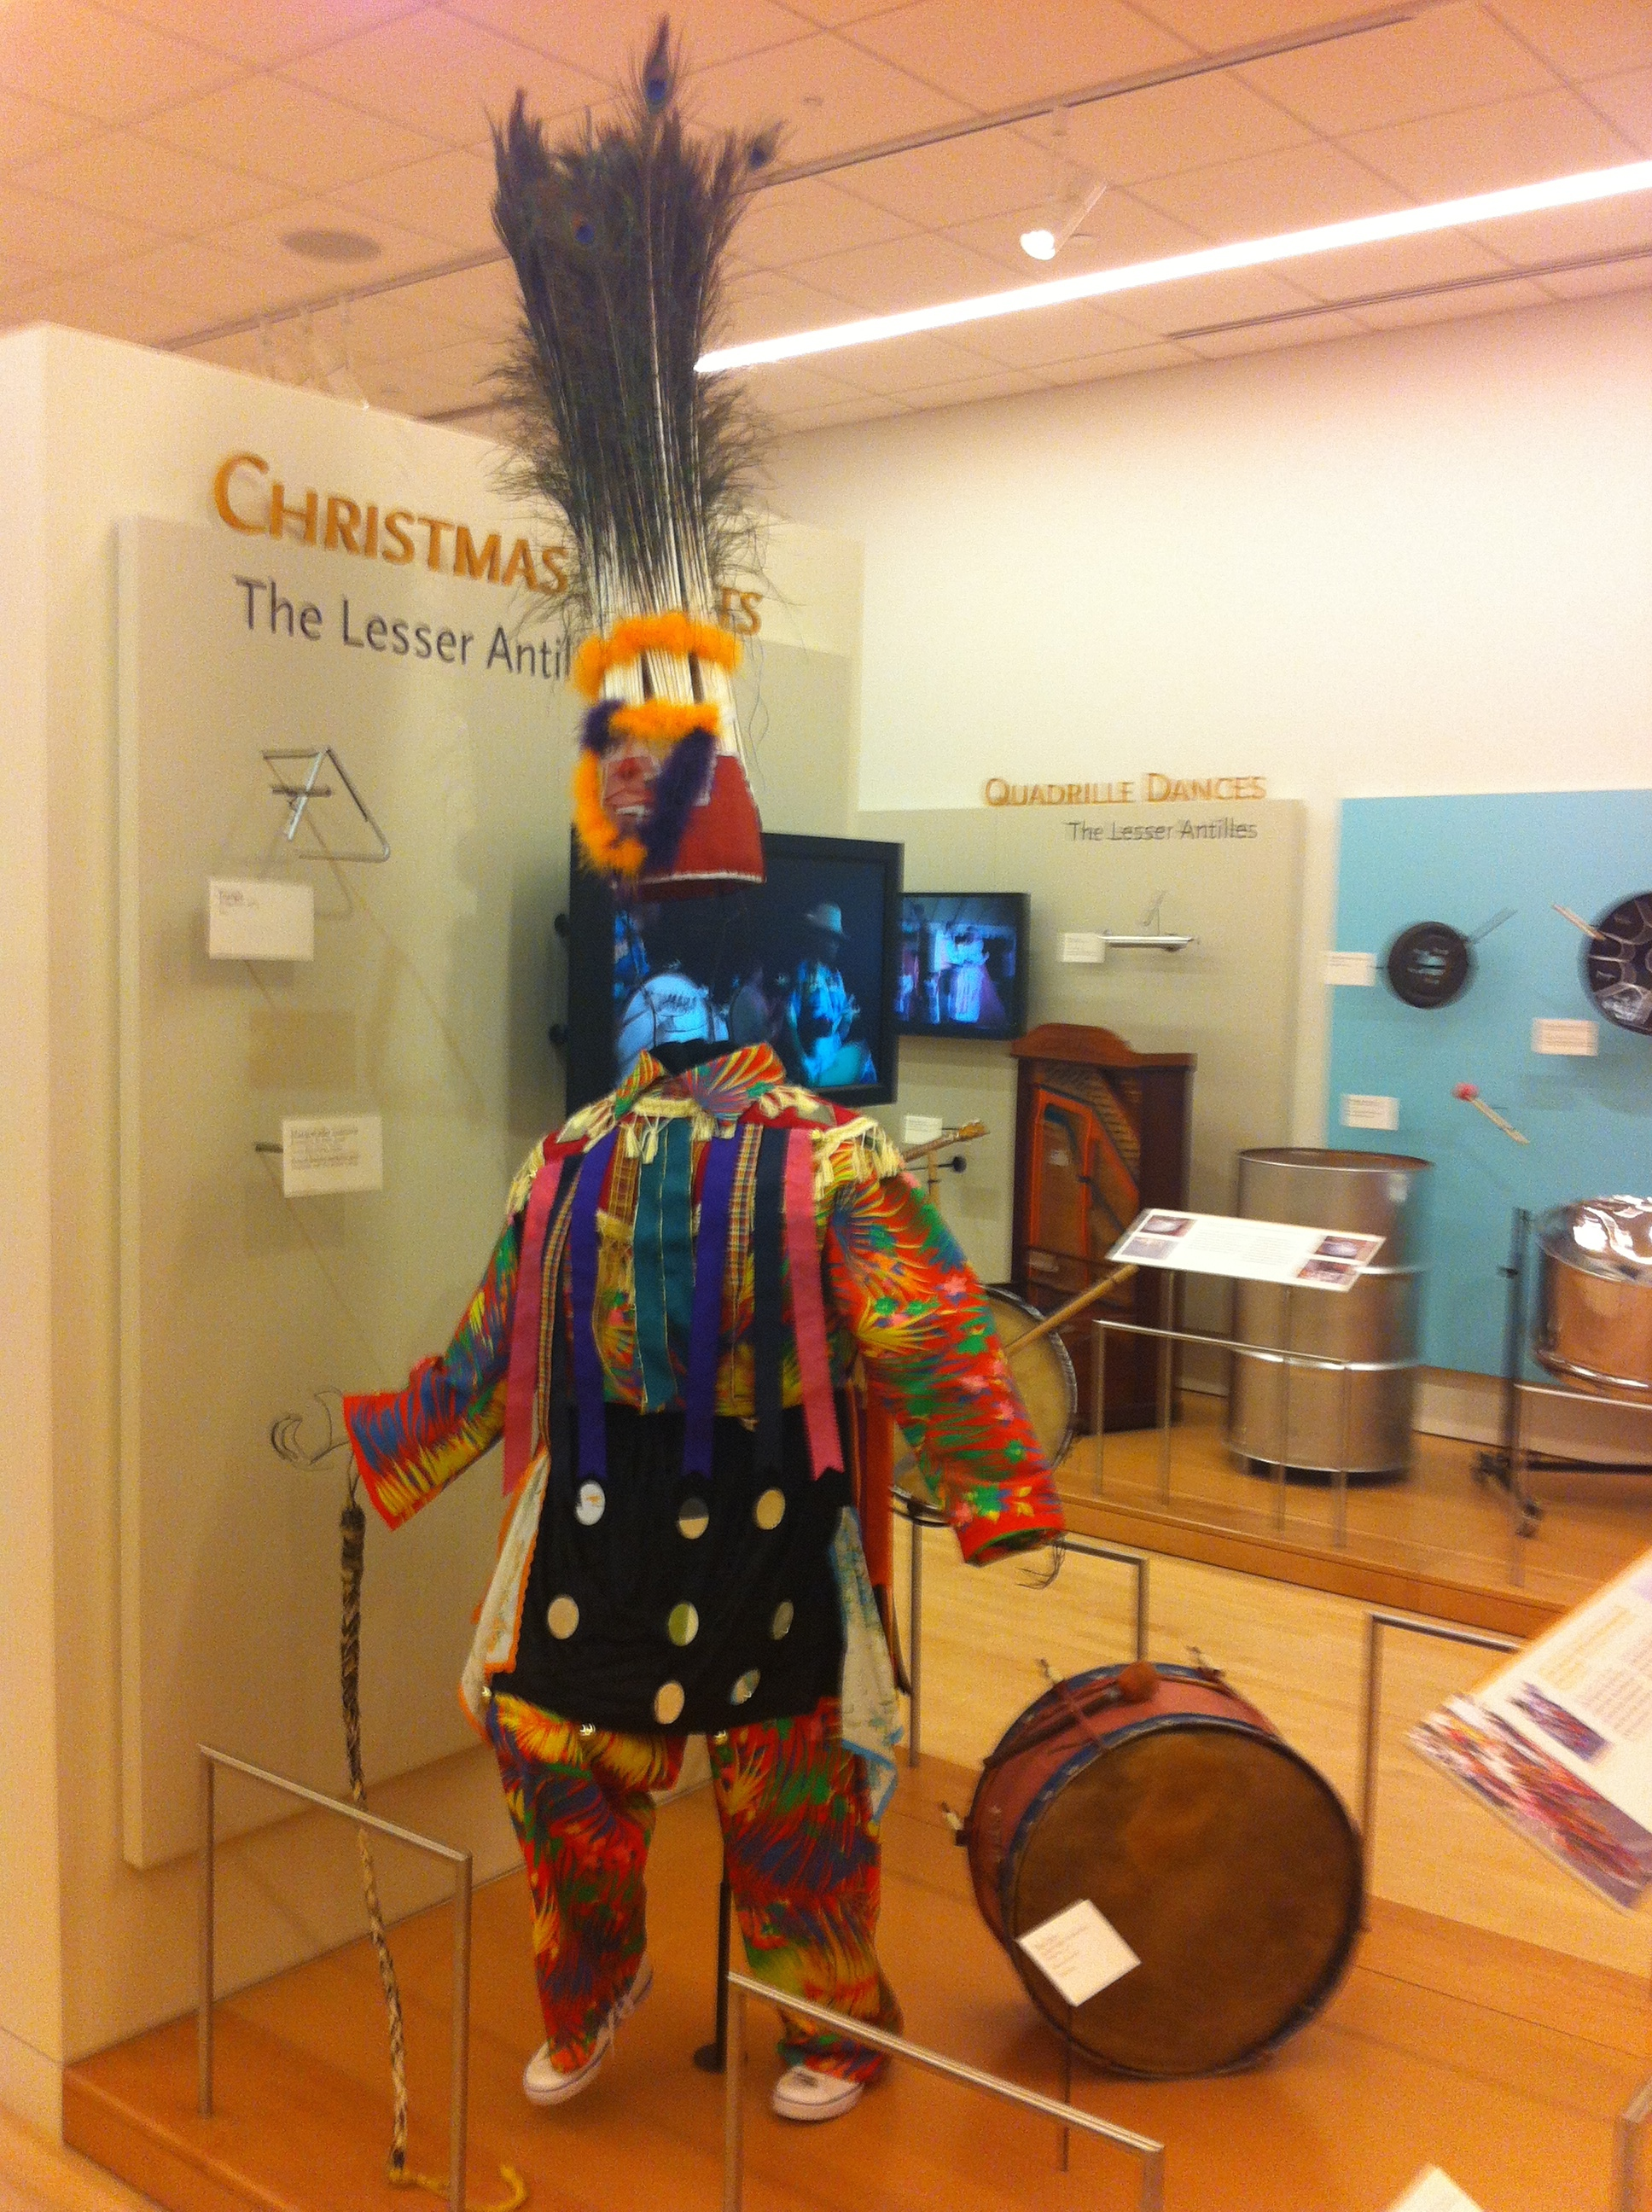 The integration of the local costumes relating to the music and culture was impressive.